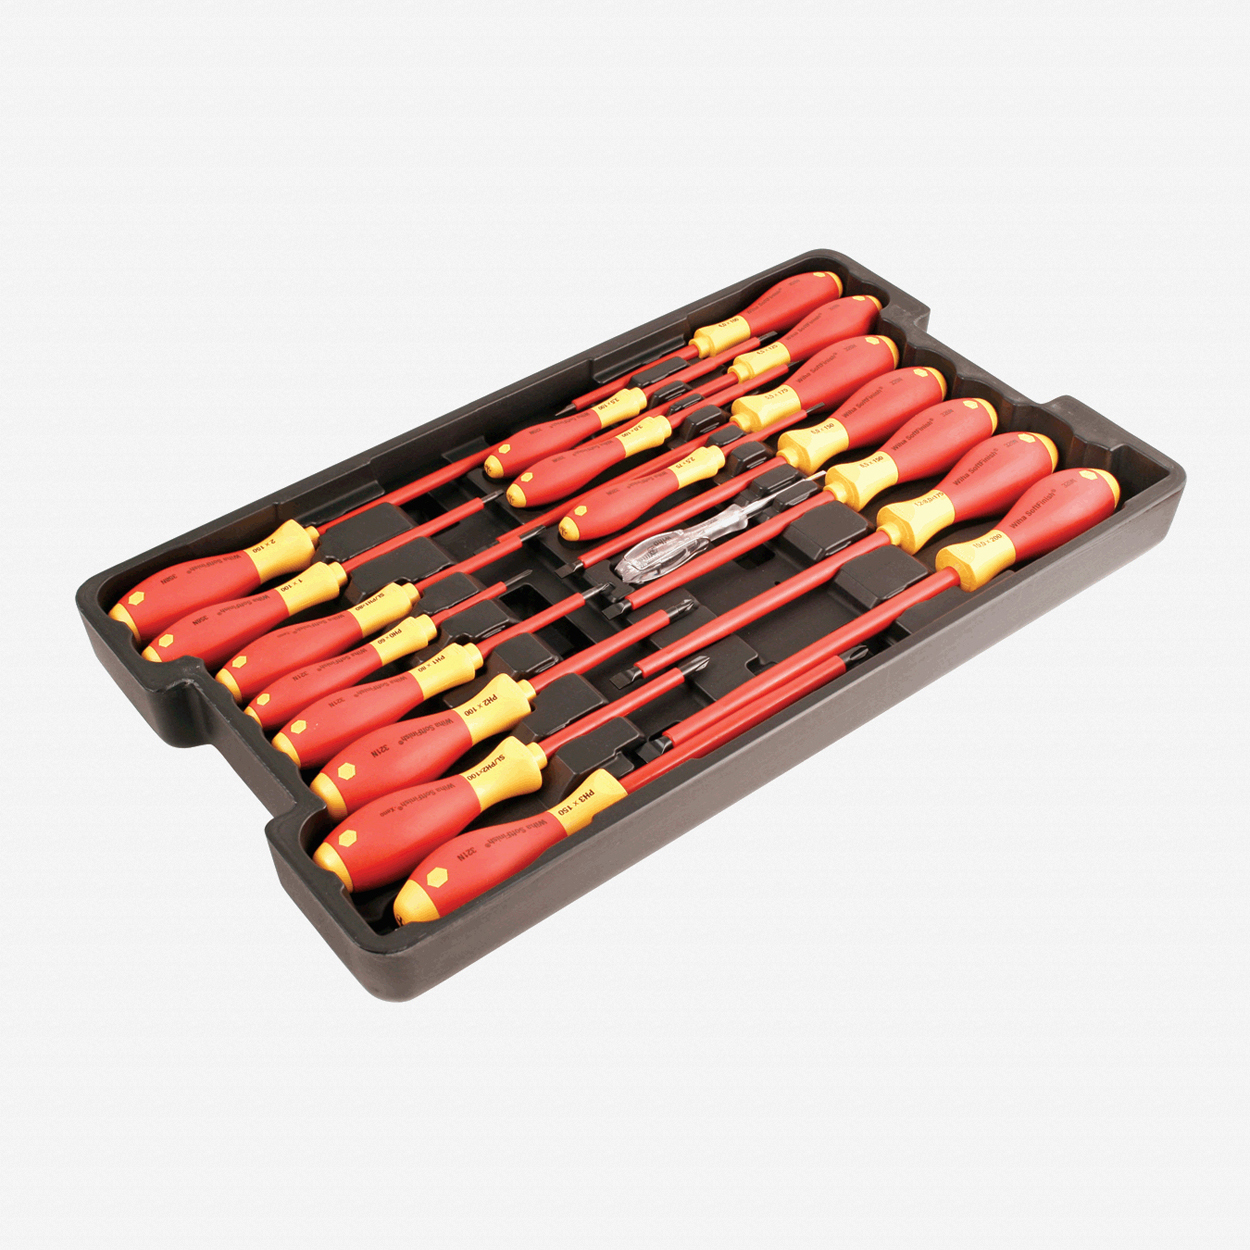 Wiha 32095 19 Piece Insulated Slotted/Phillips/Square/Terminal Screwdriver Box Set - KC Tool